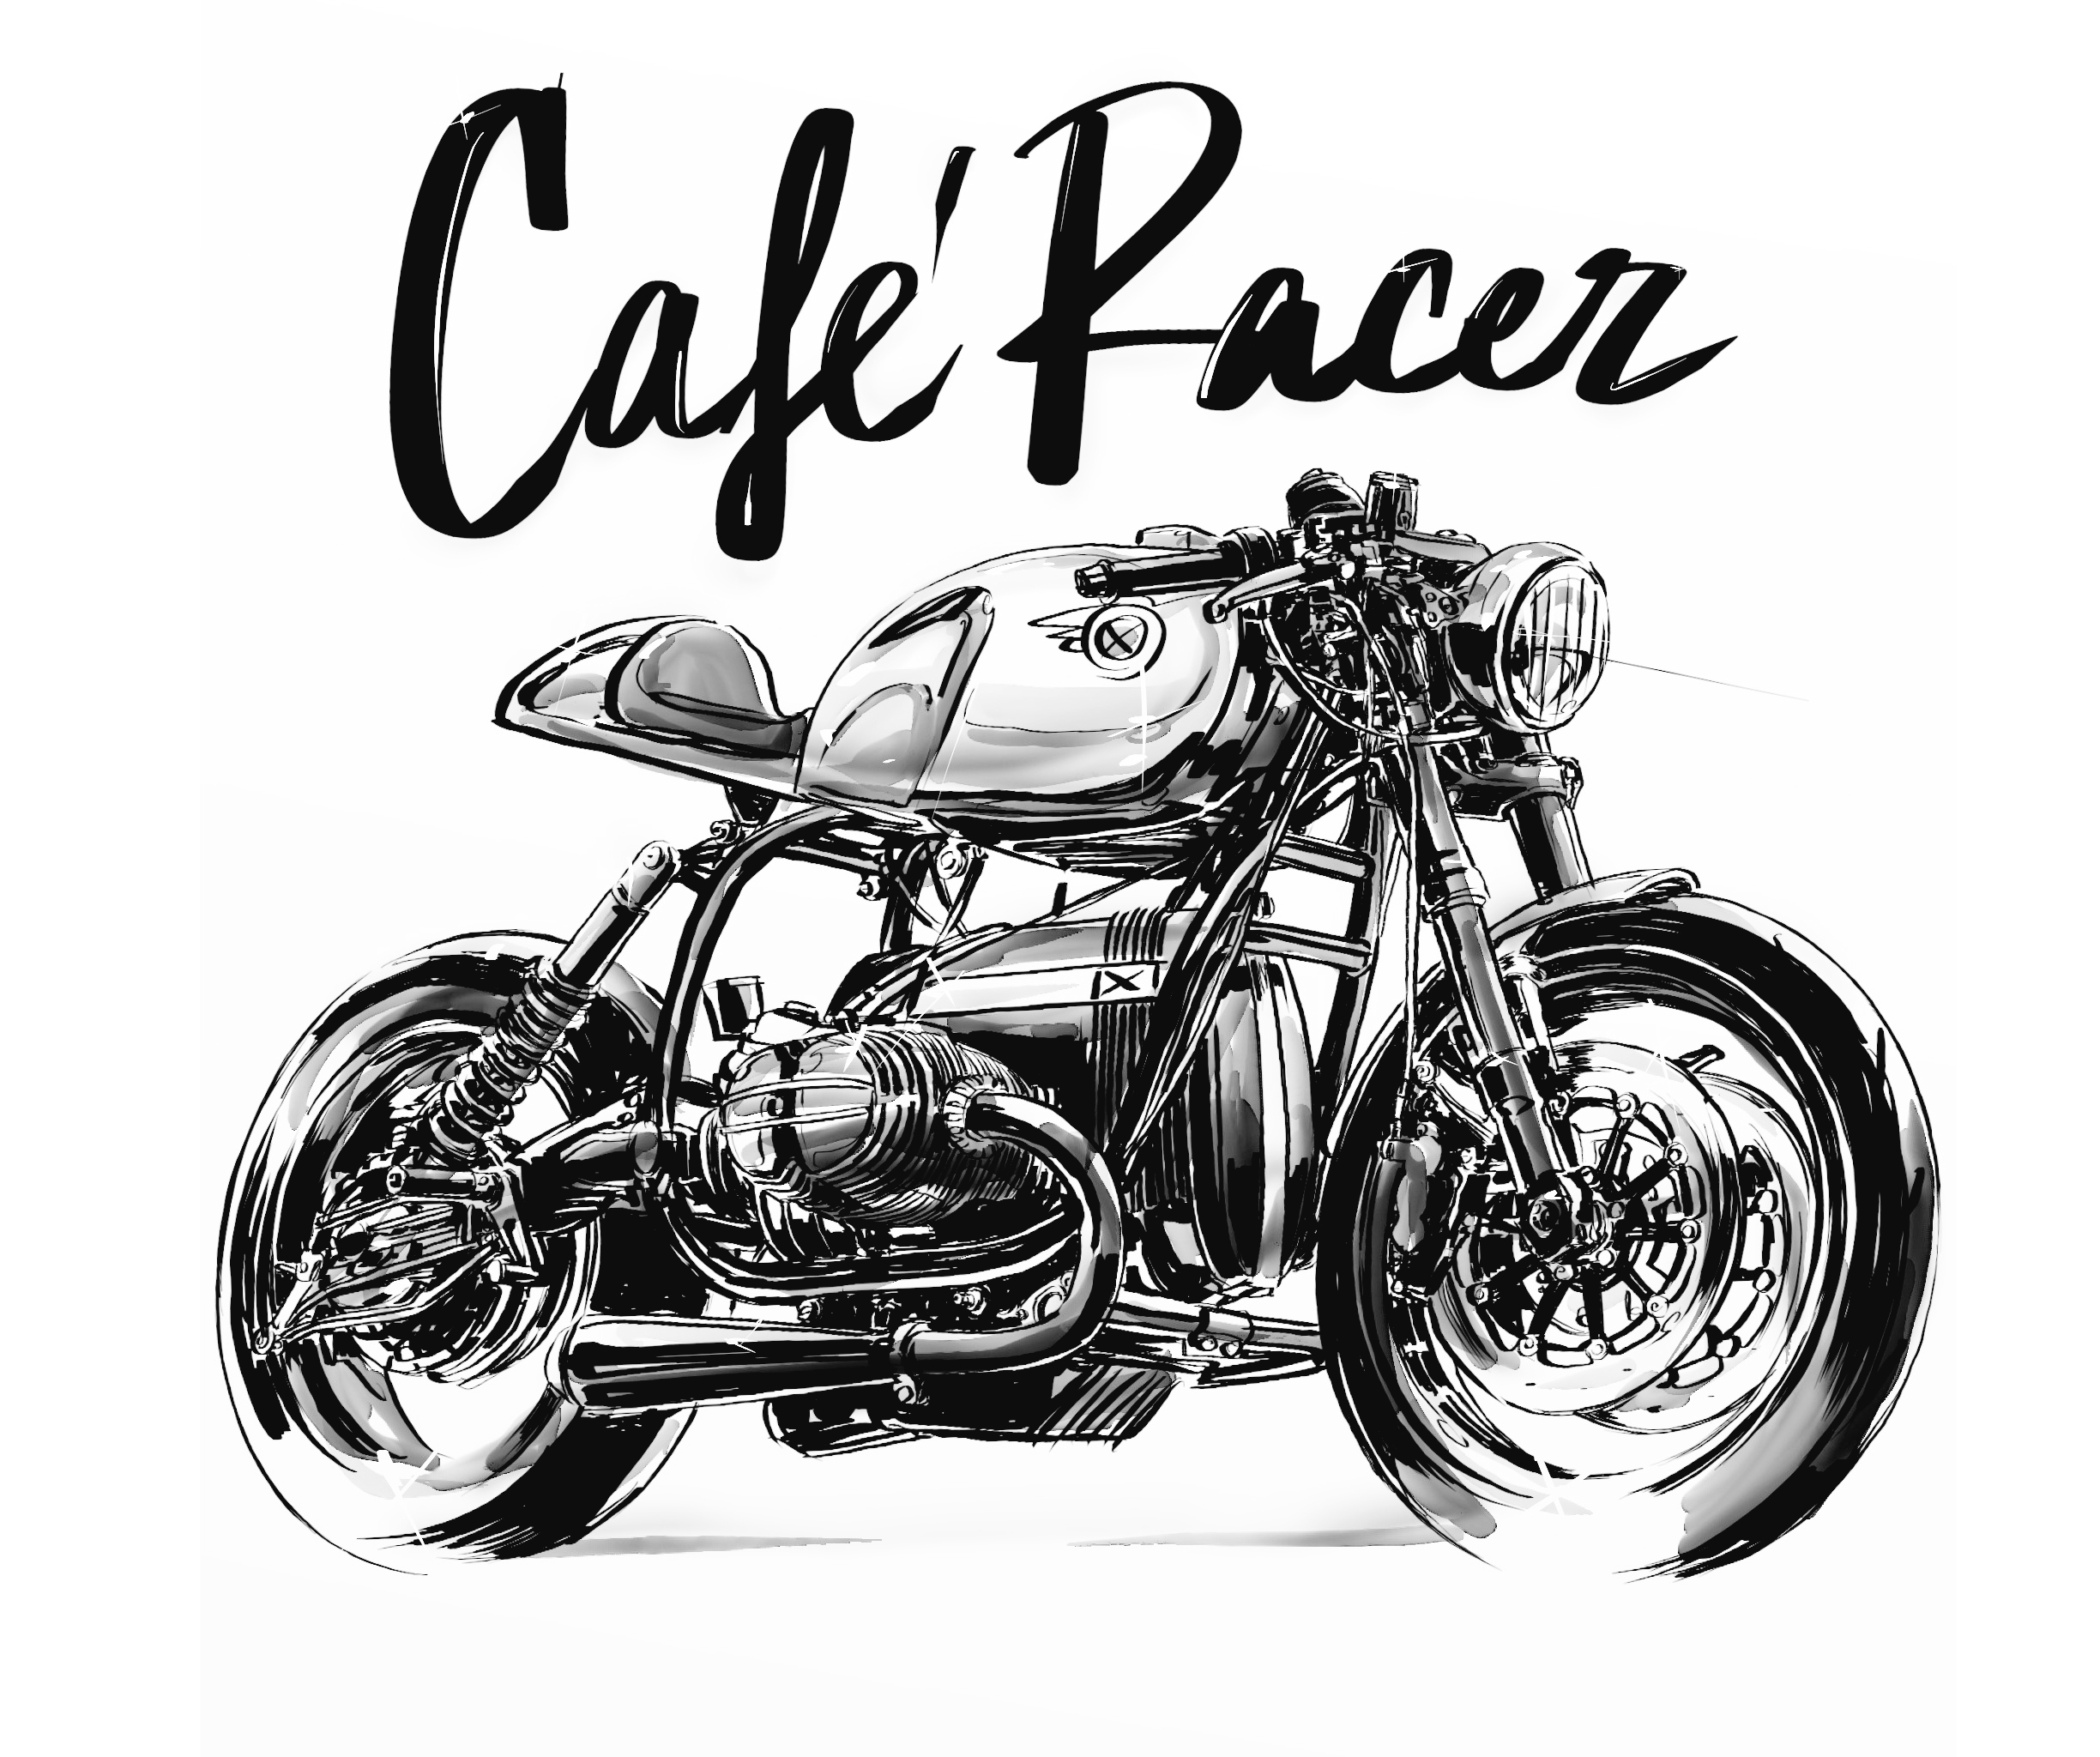 honda wiring diagram motorcycle wiring diagram database Honda Ca175 Wiring Diagram cafe bike wiring diagram wiring diagram database honda motorcycle owners manuals cb360 cafe racer wiring diagram